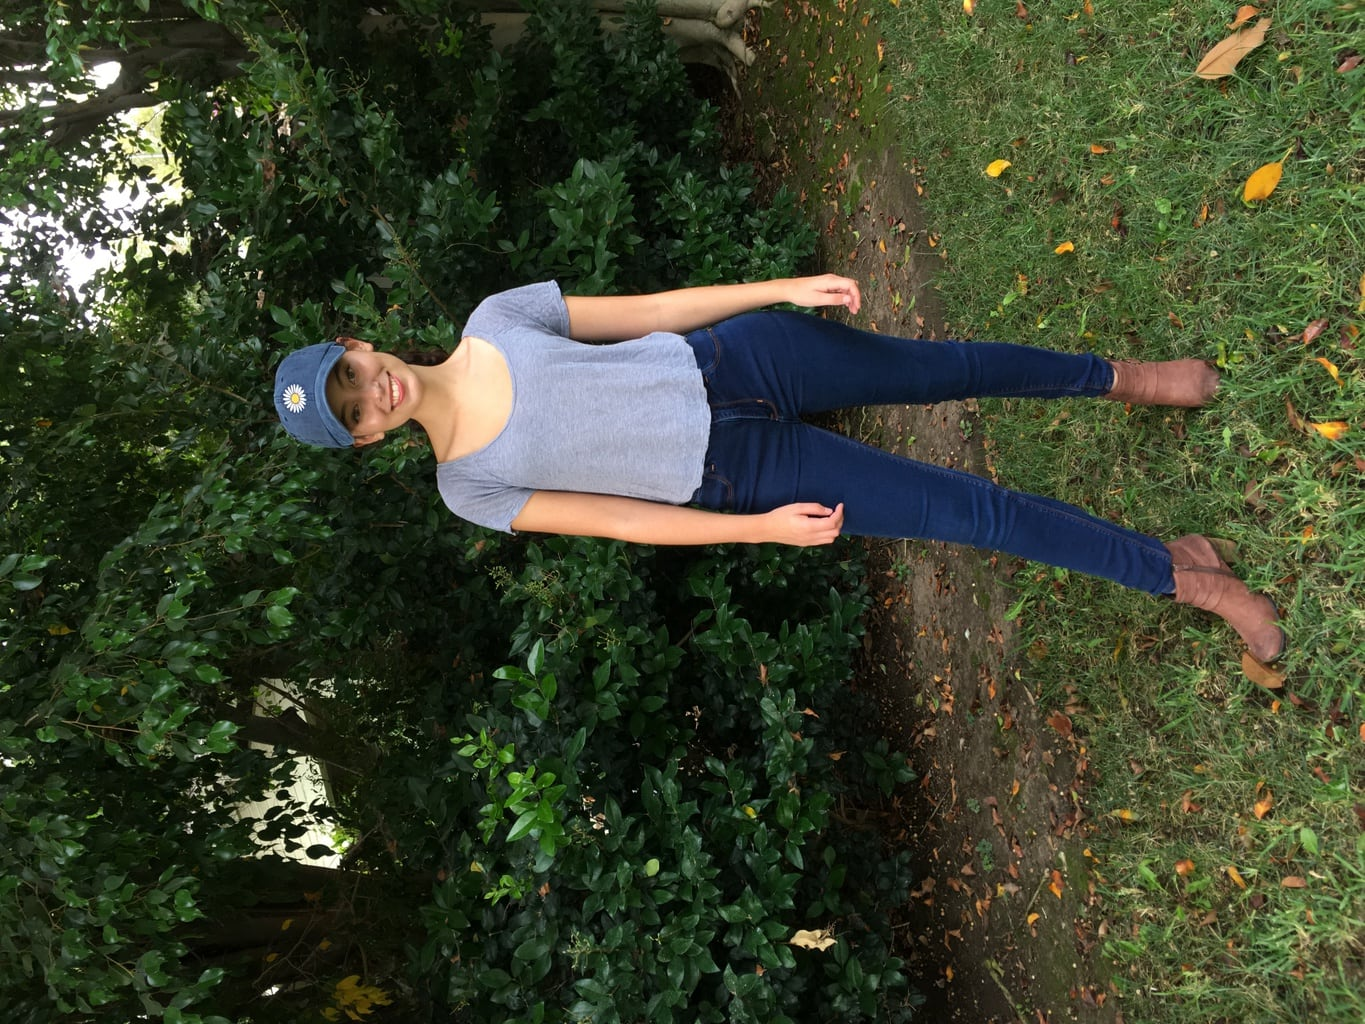 Girl in baseball cap, grey shirt, jeans, and brown boots